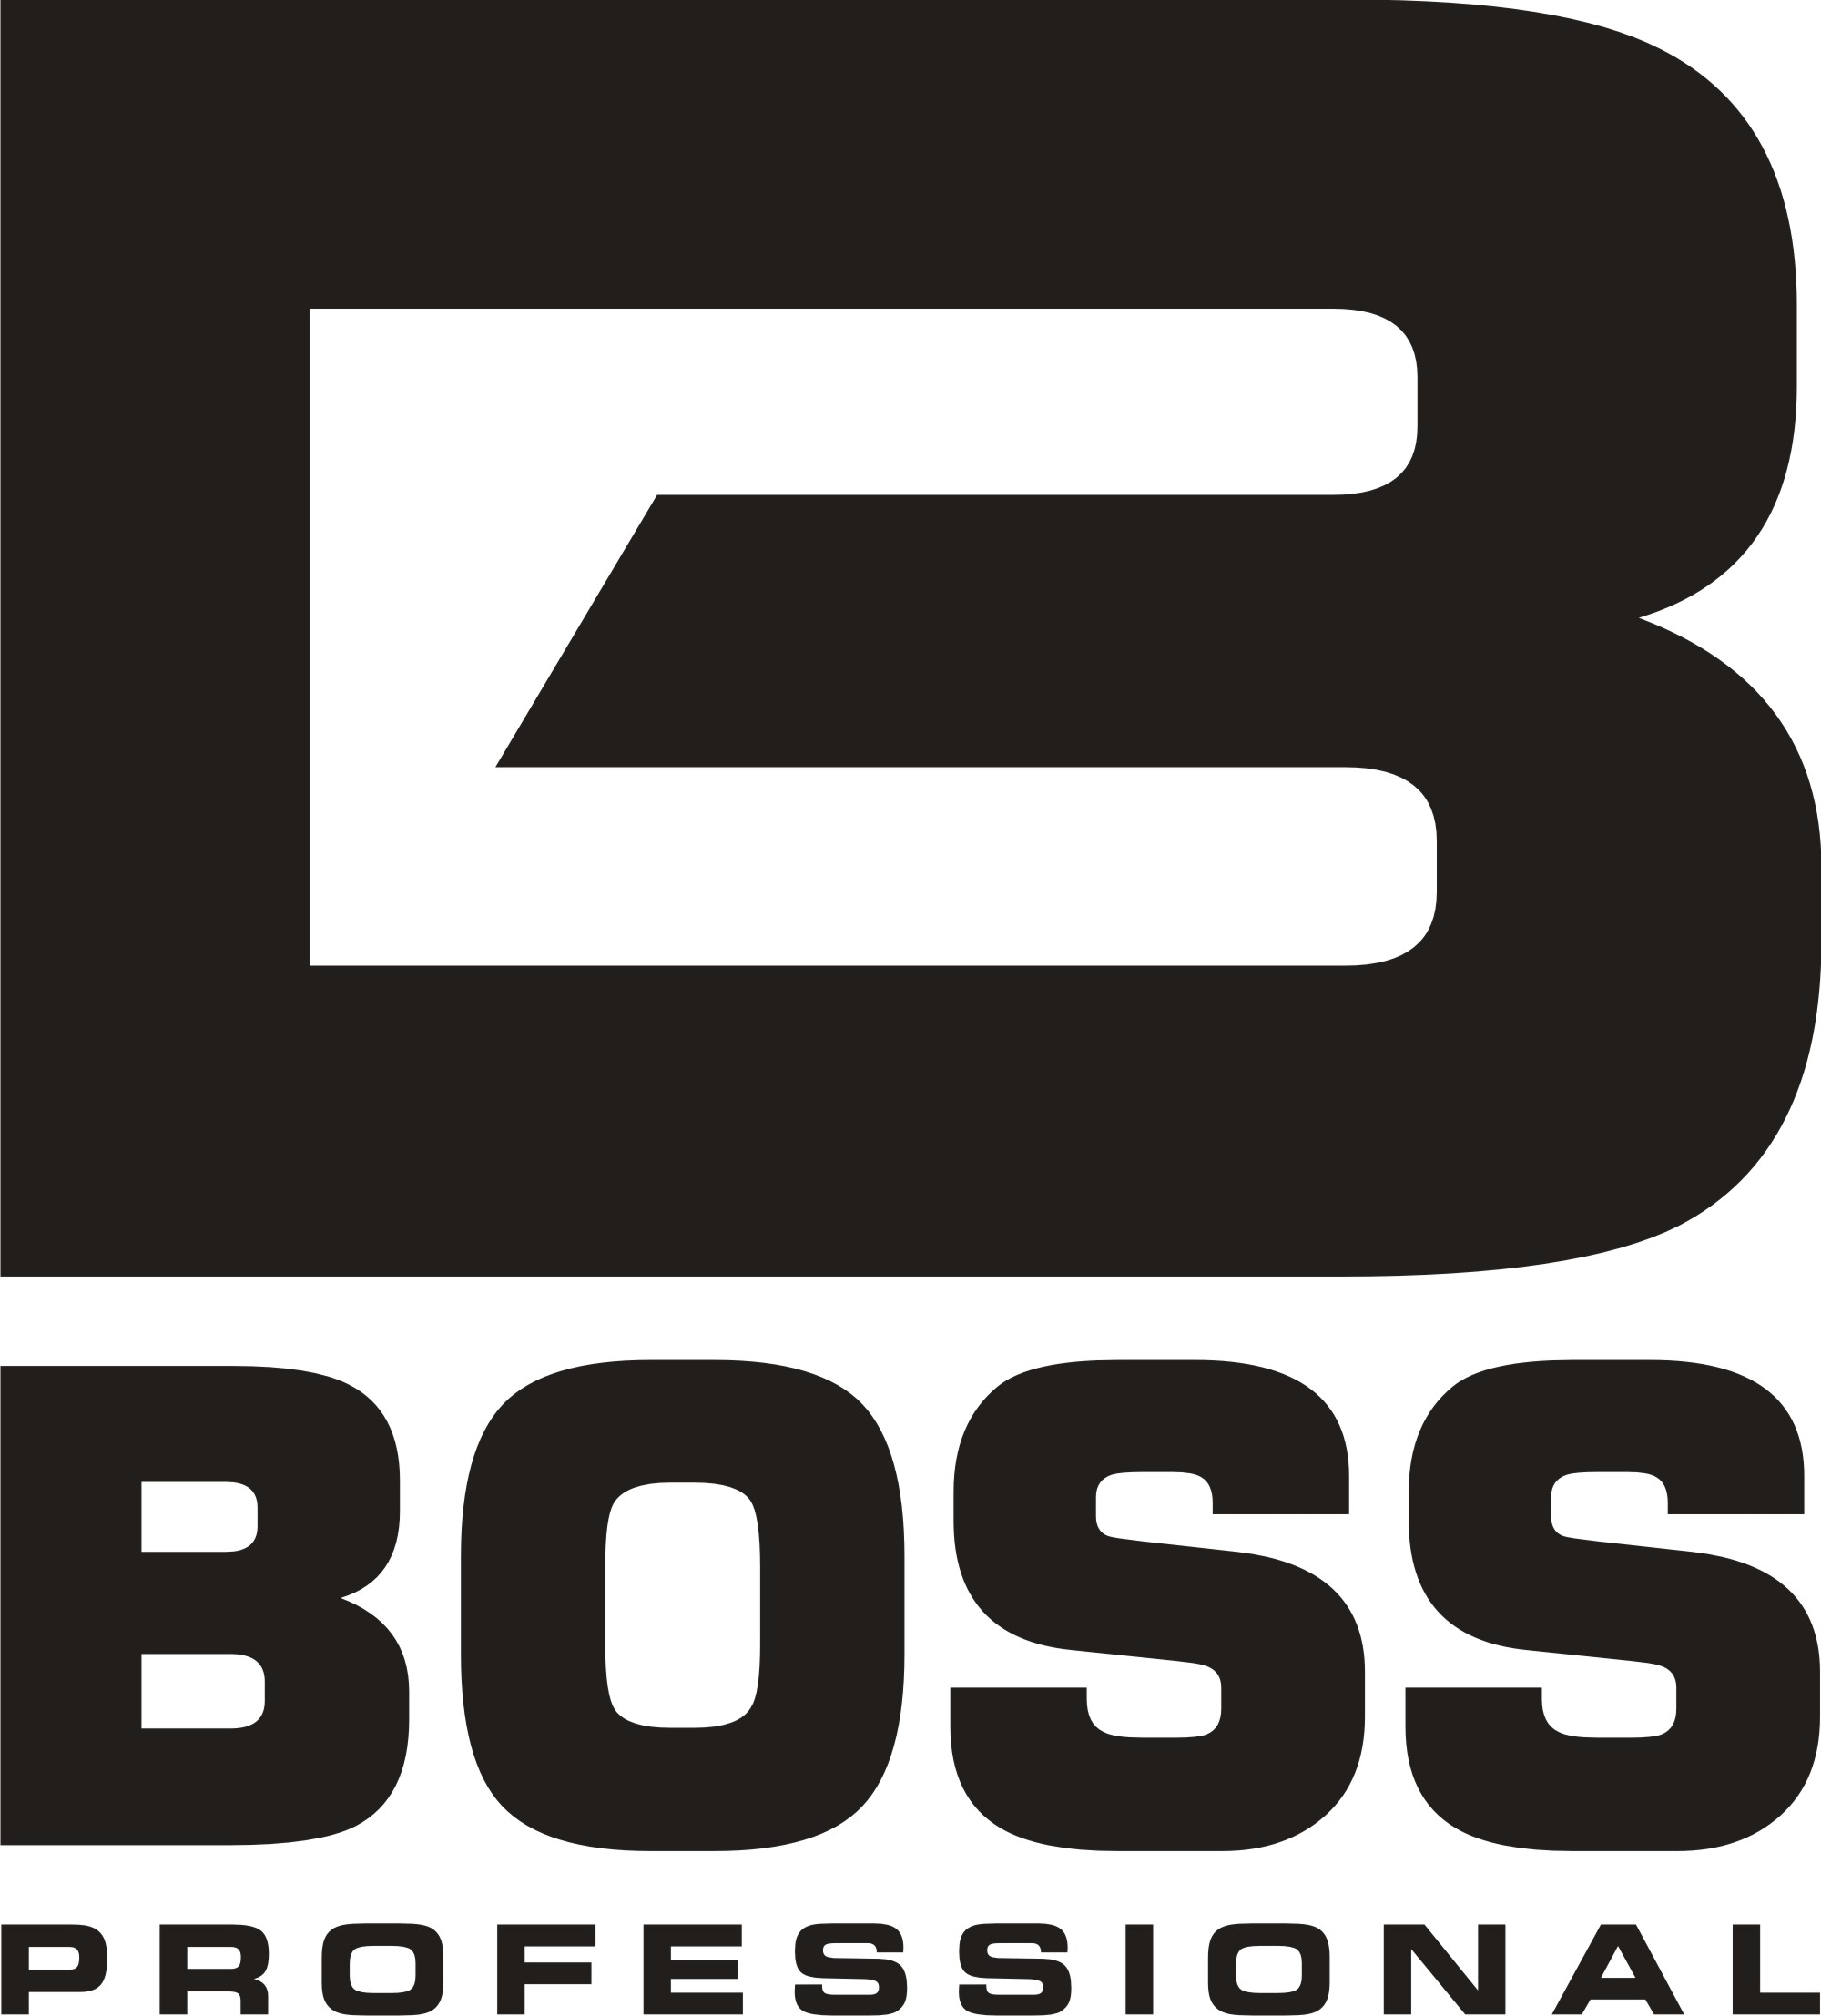 30 professional logo designs for boss a business in for Design lago